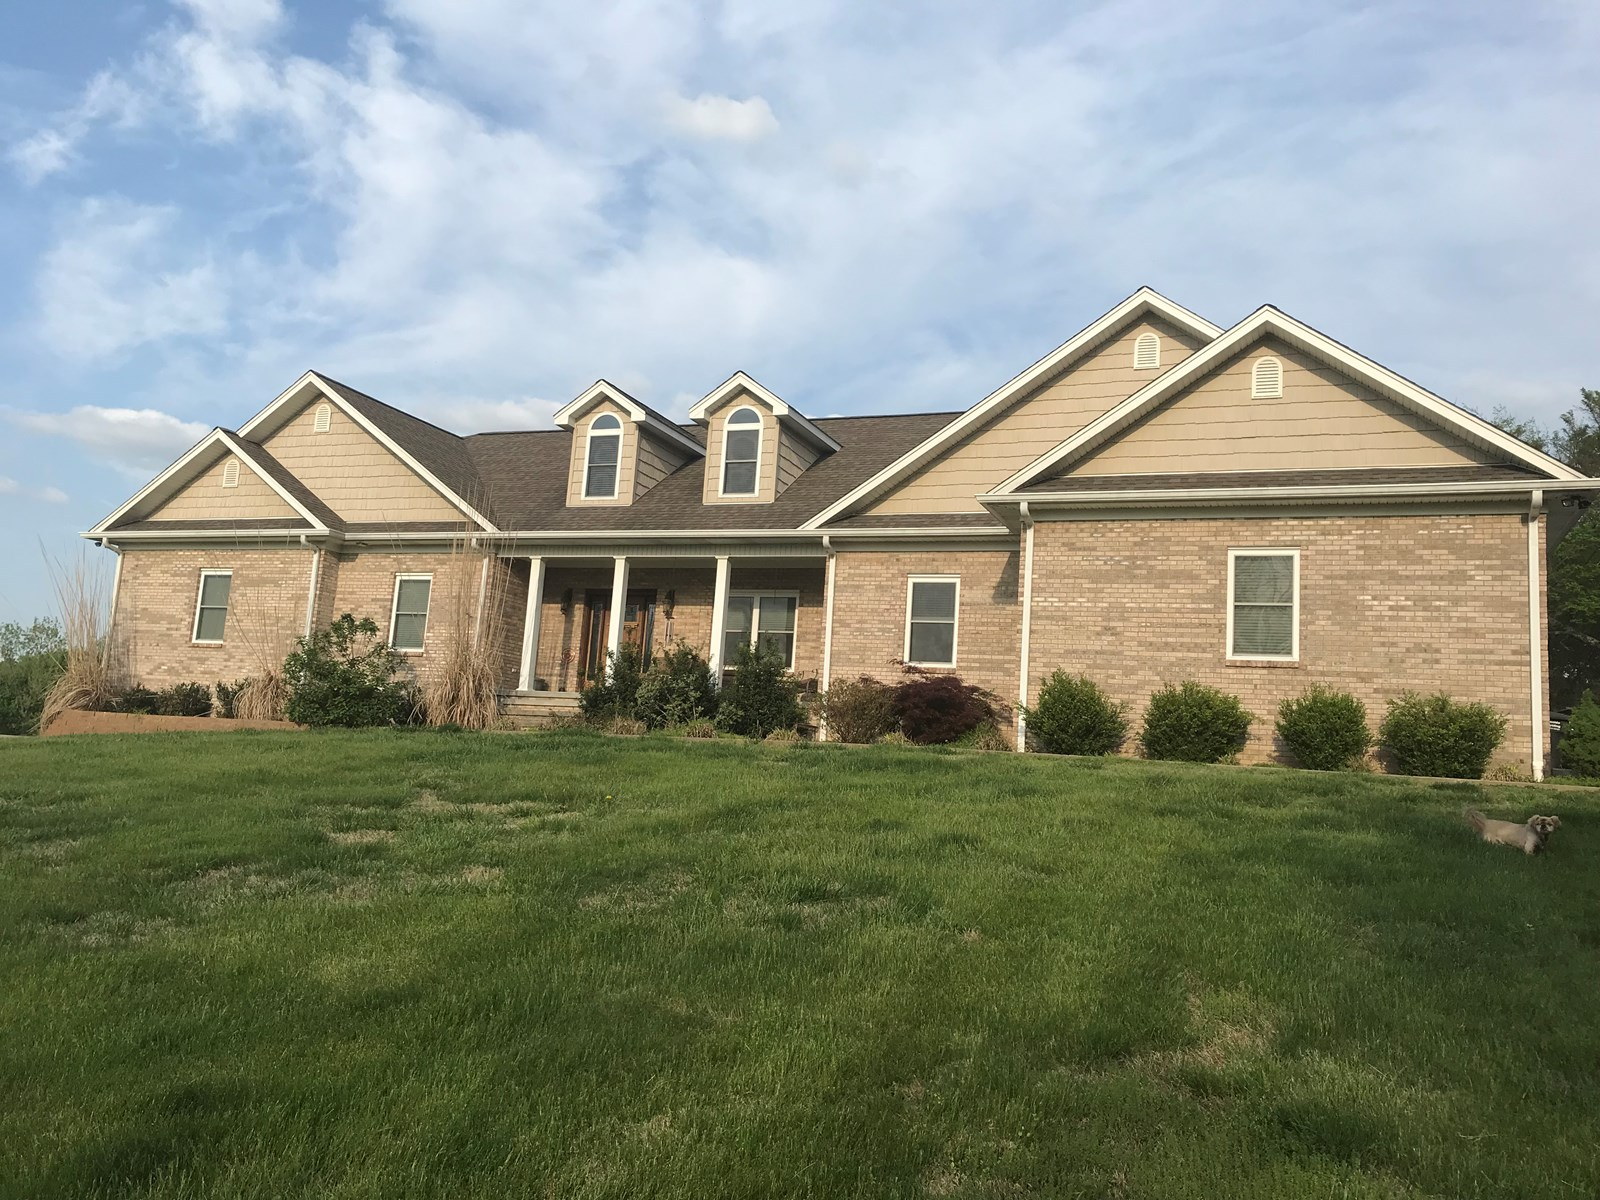 60 acre Farm in Barren County With Beautiful Home